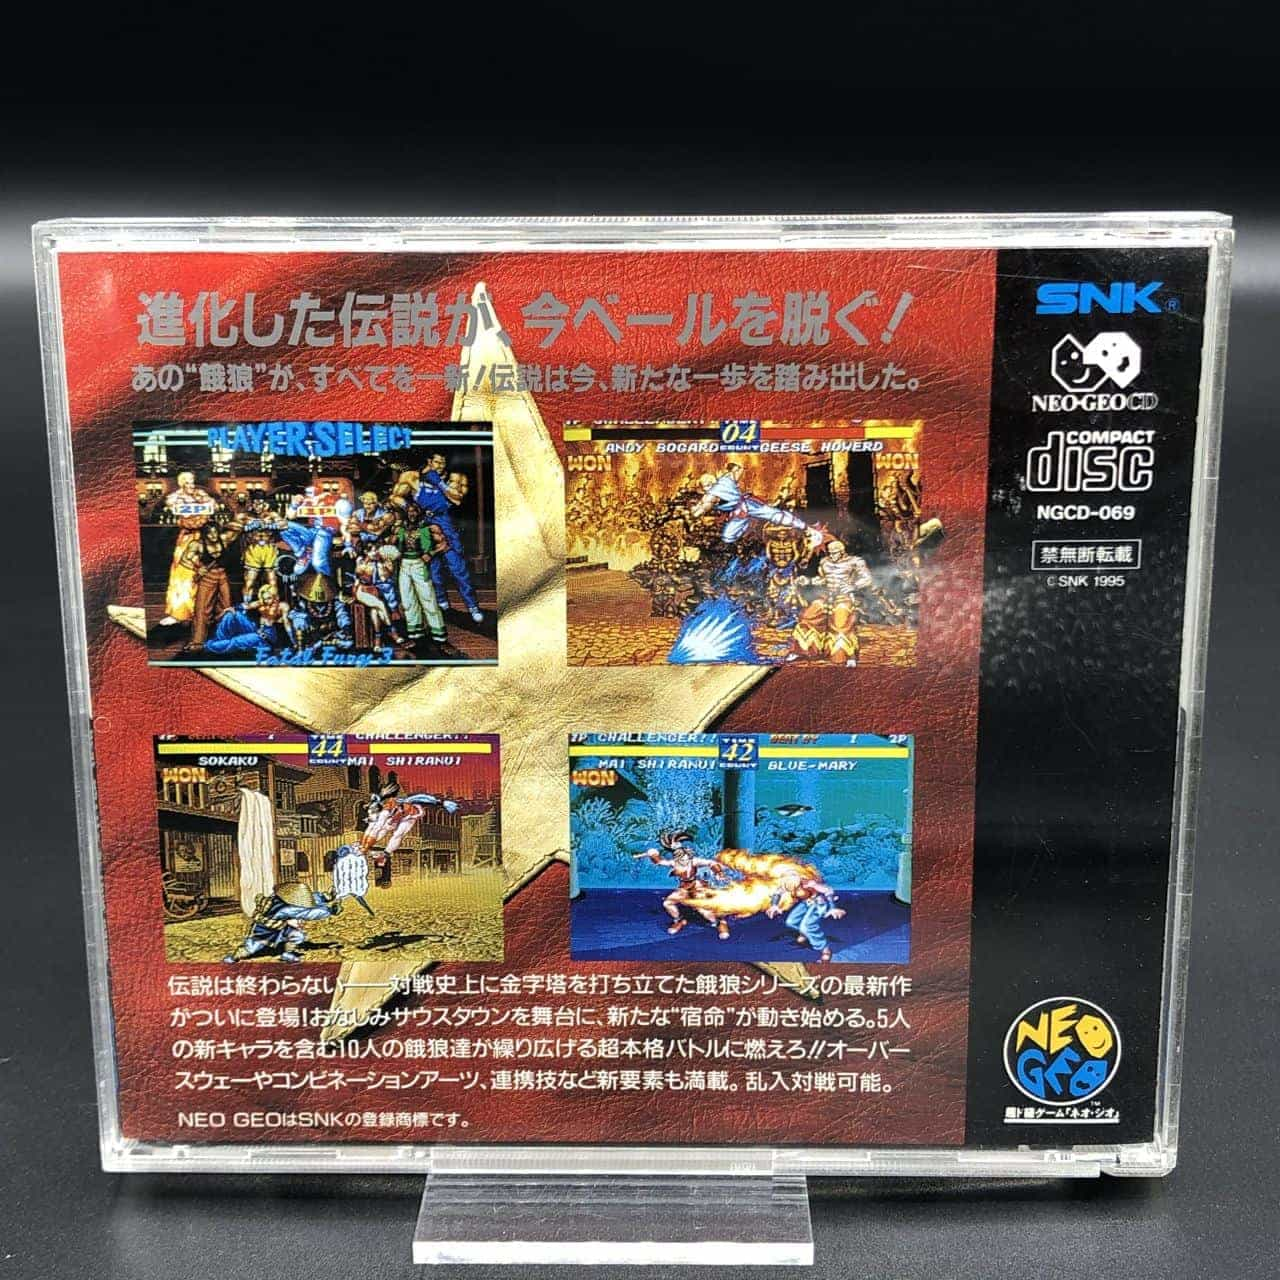 Fatal Fury 3: Road to the final Victory (ohne Spine, ohne Reg. Card) (Sehr gut) Neo Geo CD